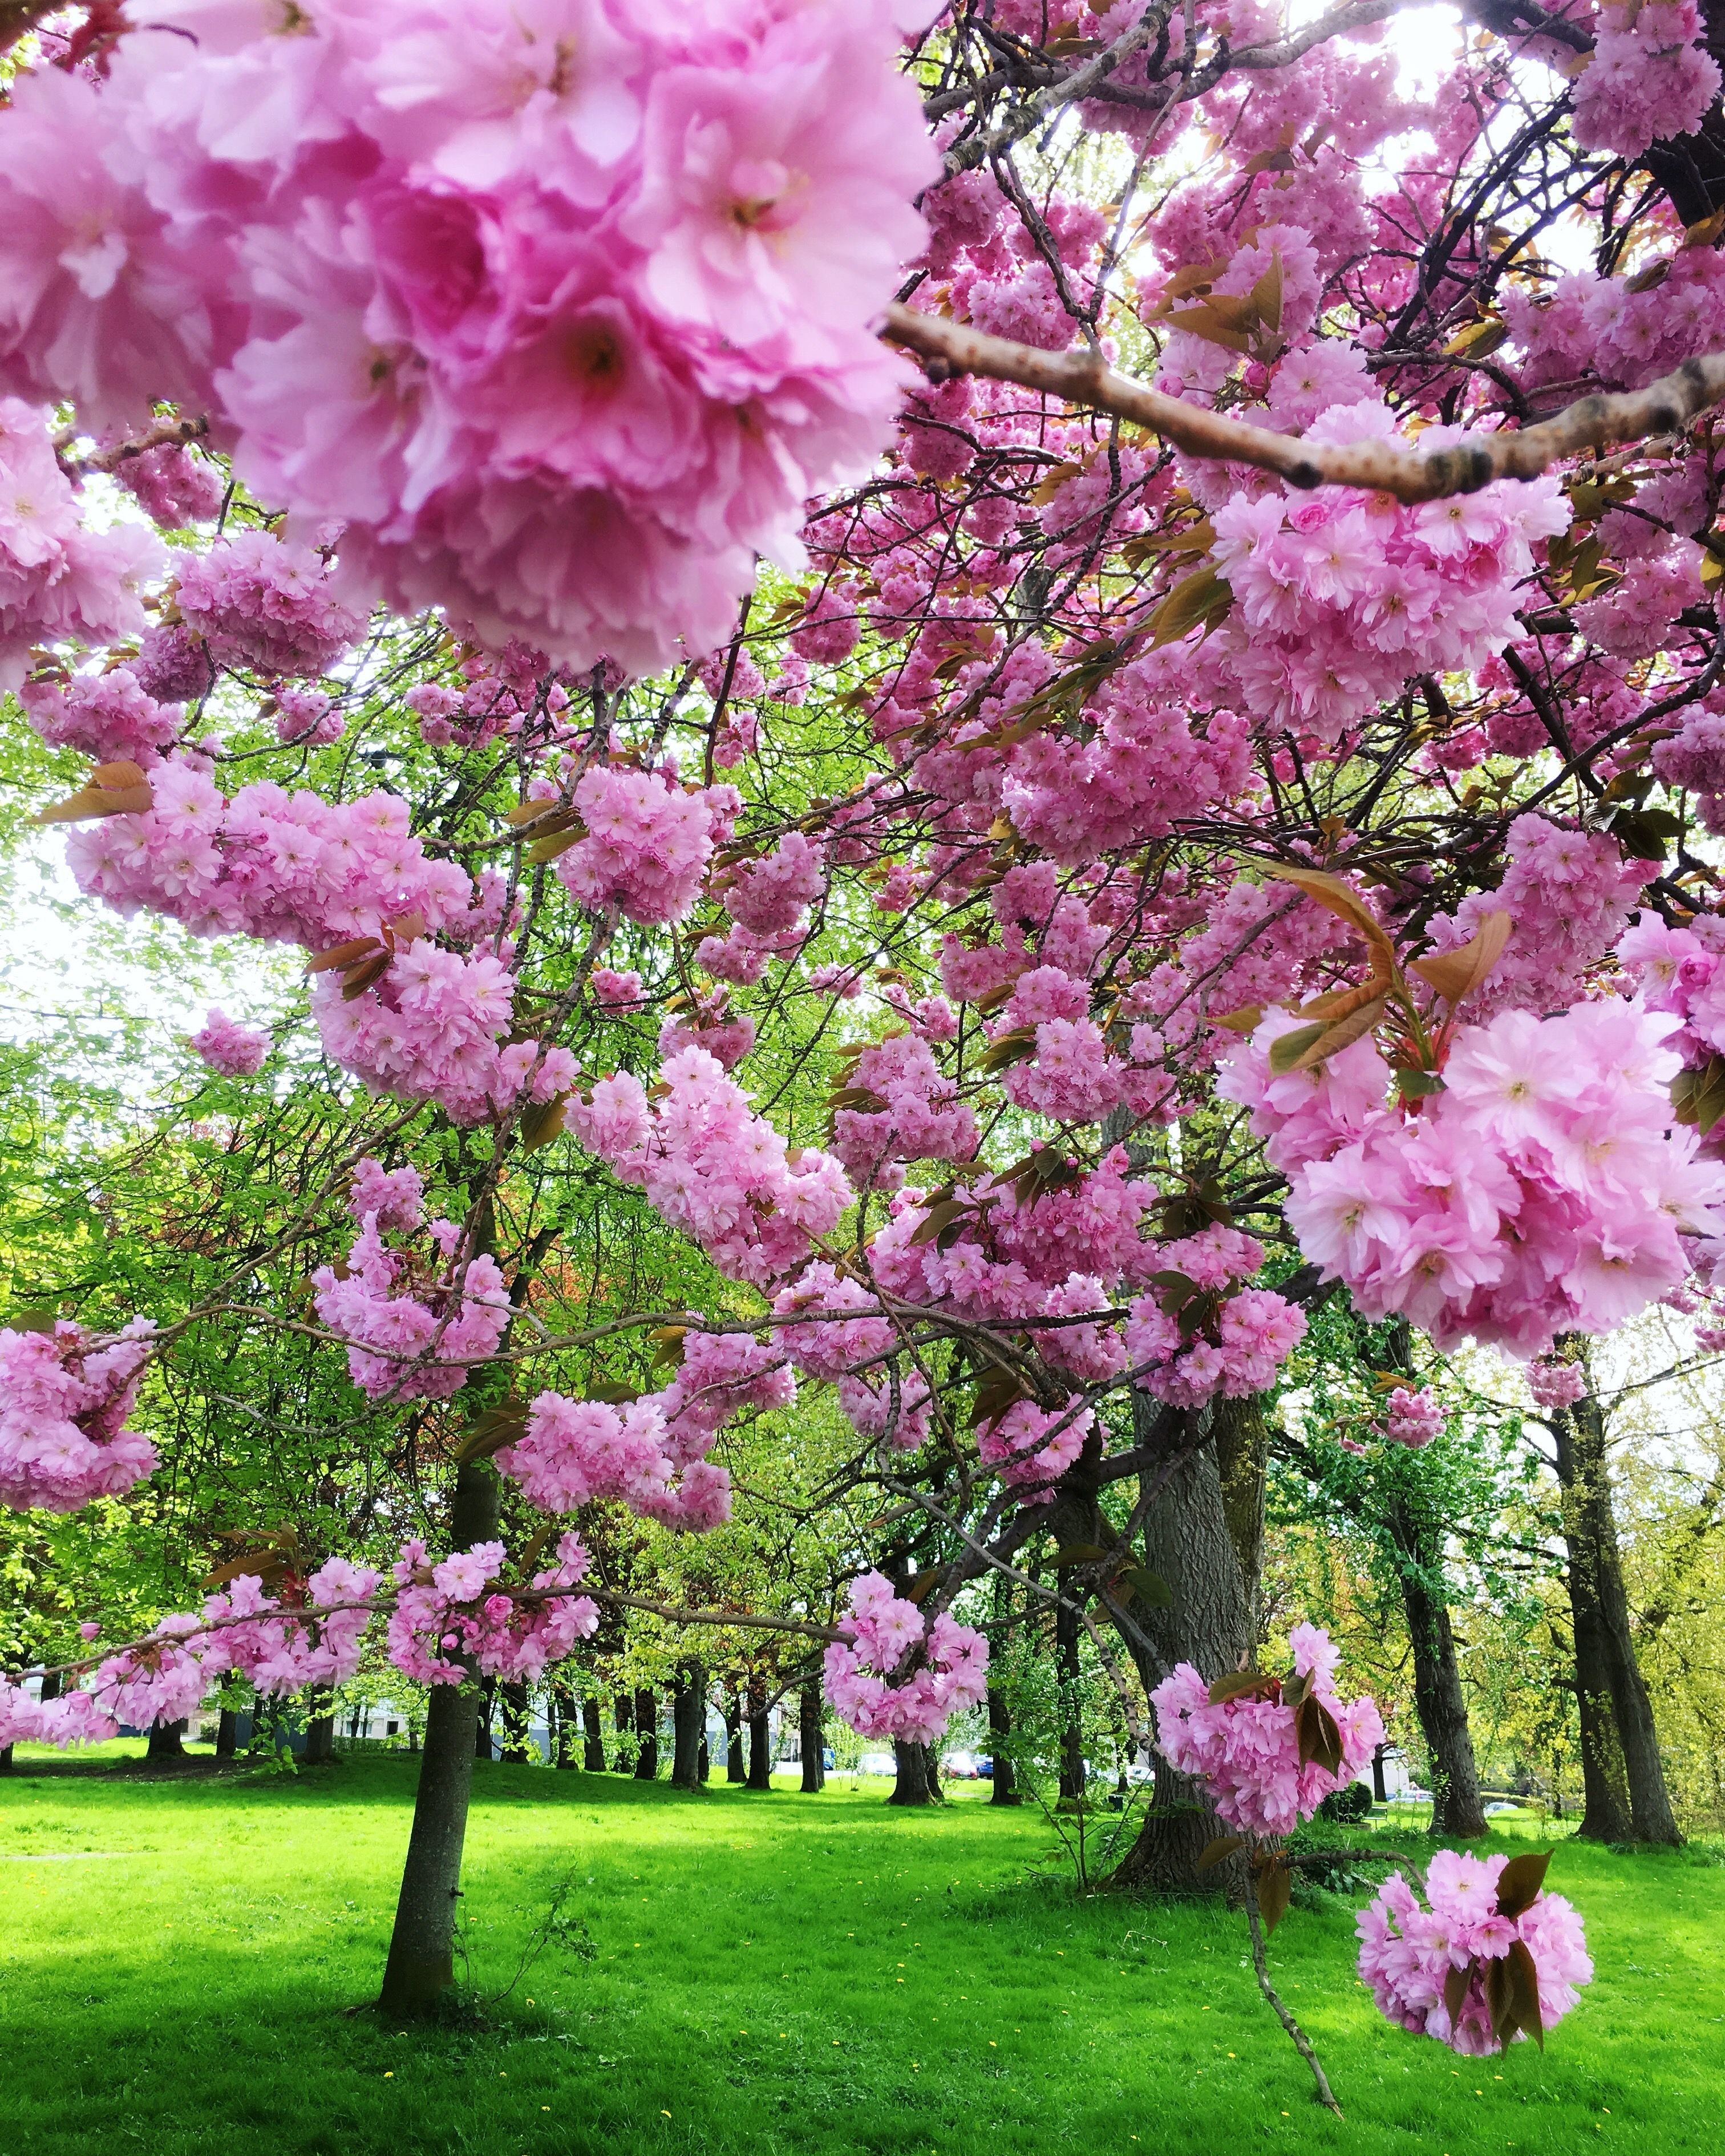 Cherry Blossom Baby Glasgow Bloomed Beautifully This Spring A Sign Of The Long Warm Summer Ahead Perha Spring Pictures Spring Scene Most Beautiful Flowers